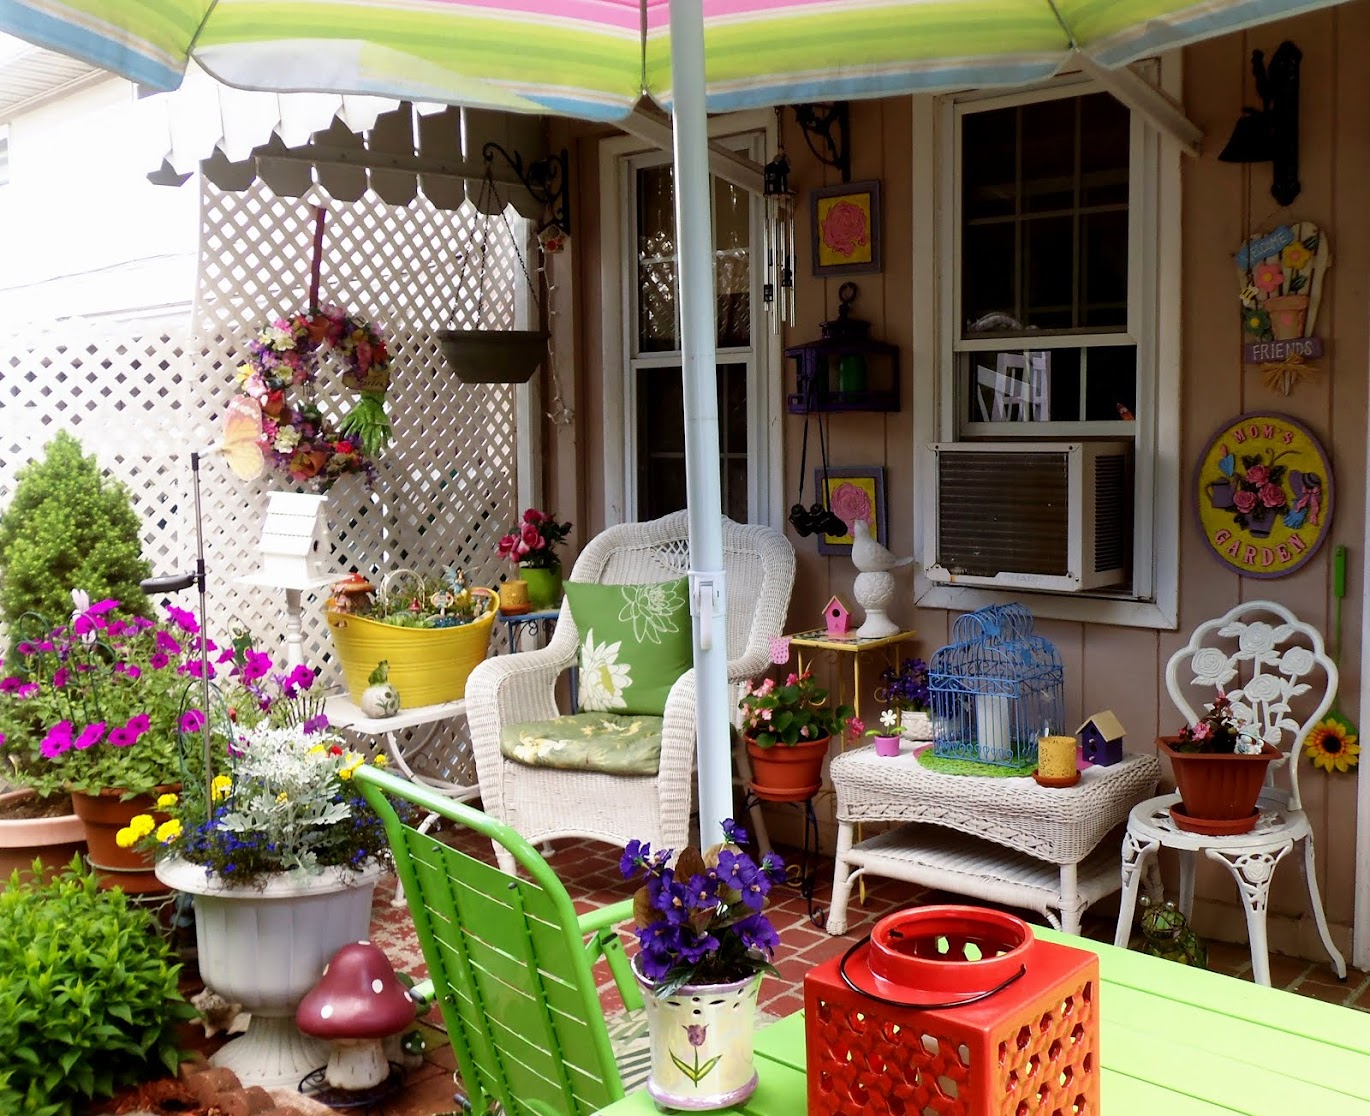 My Colorful Patio 2015, Part 1